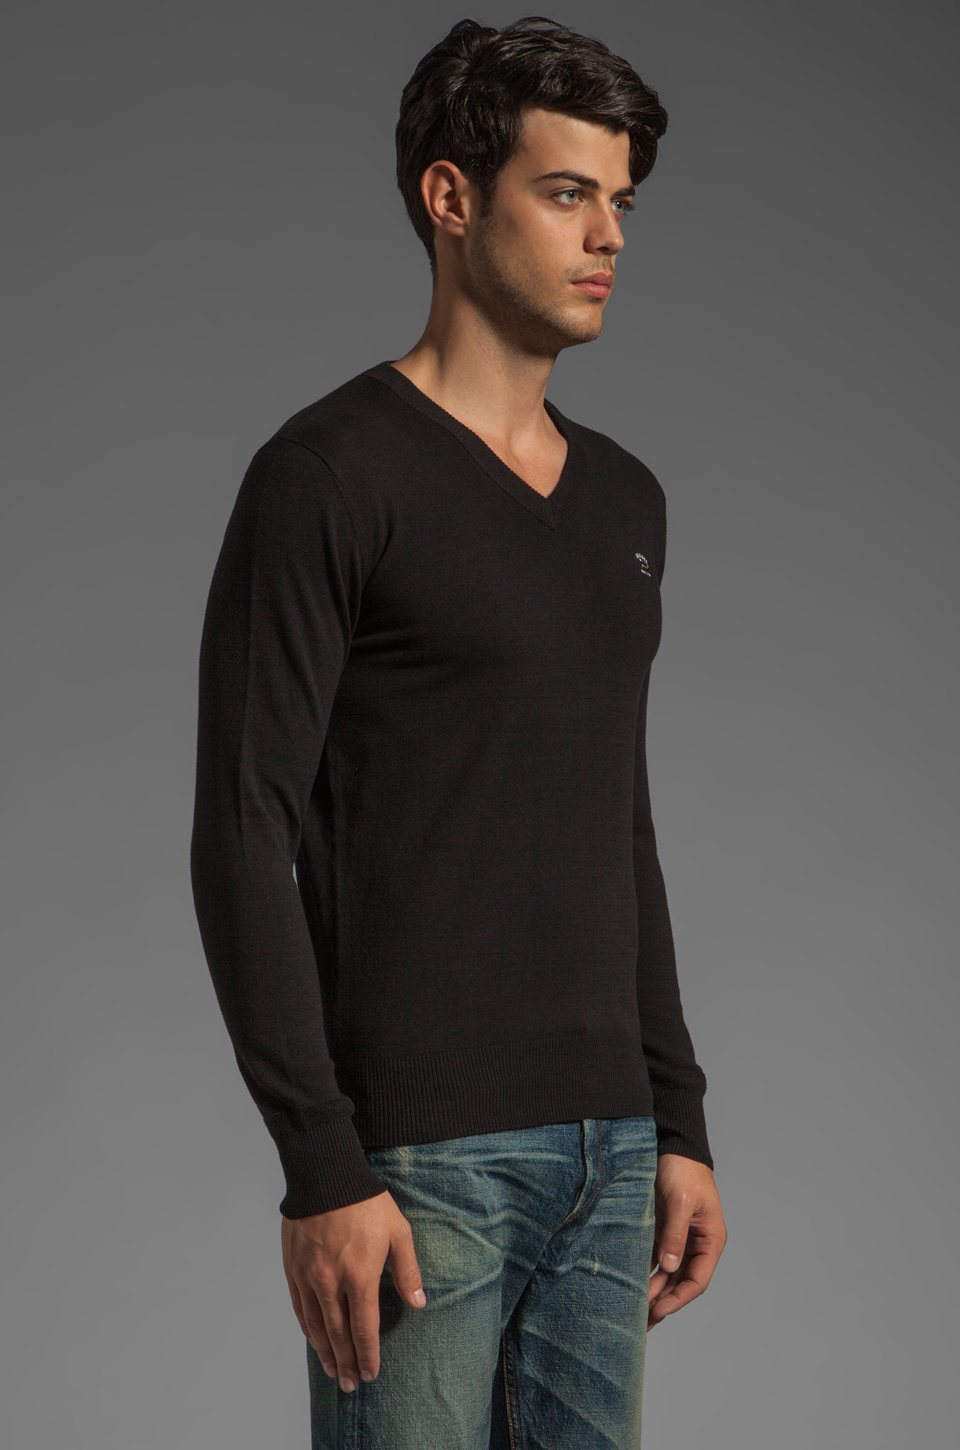 Diesel Meceneo V Neck Sweater in Black